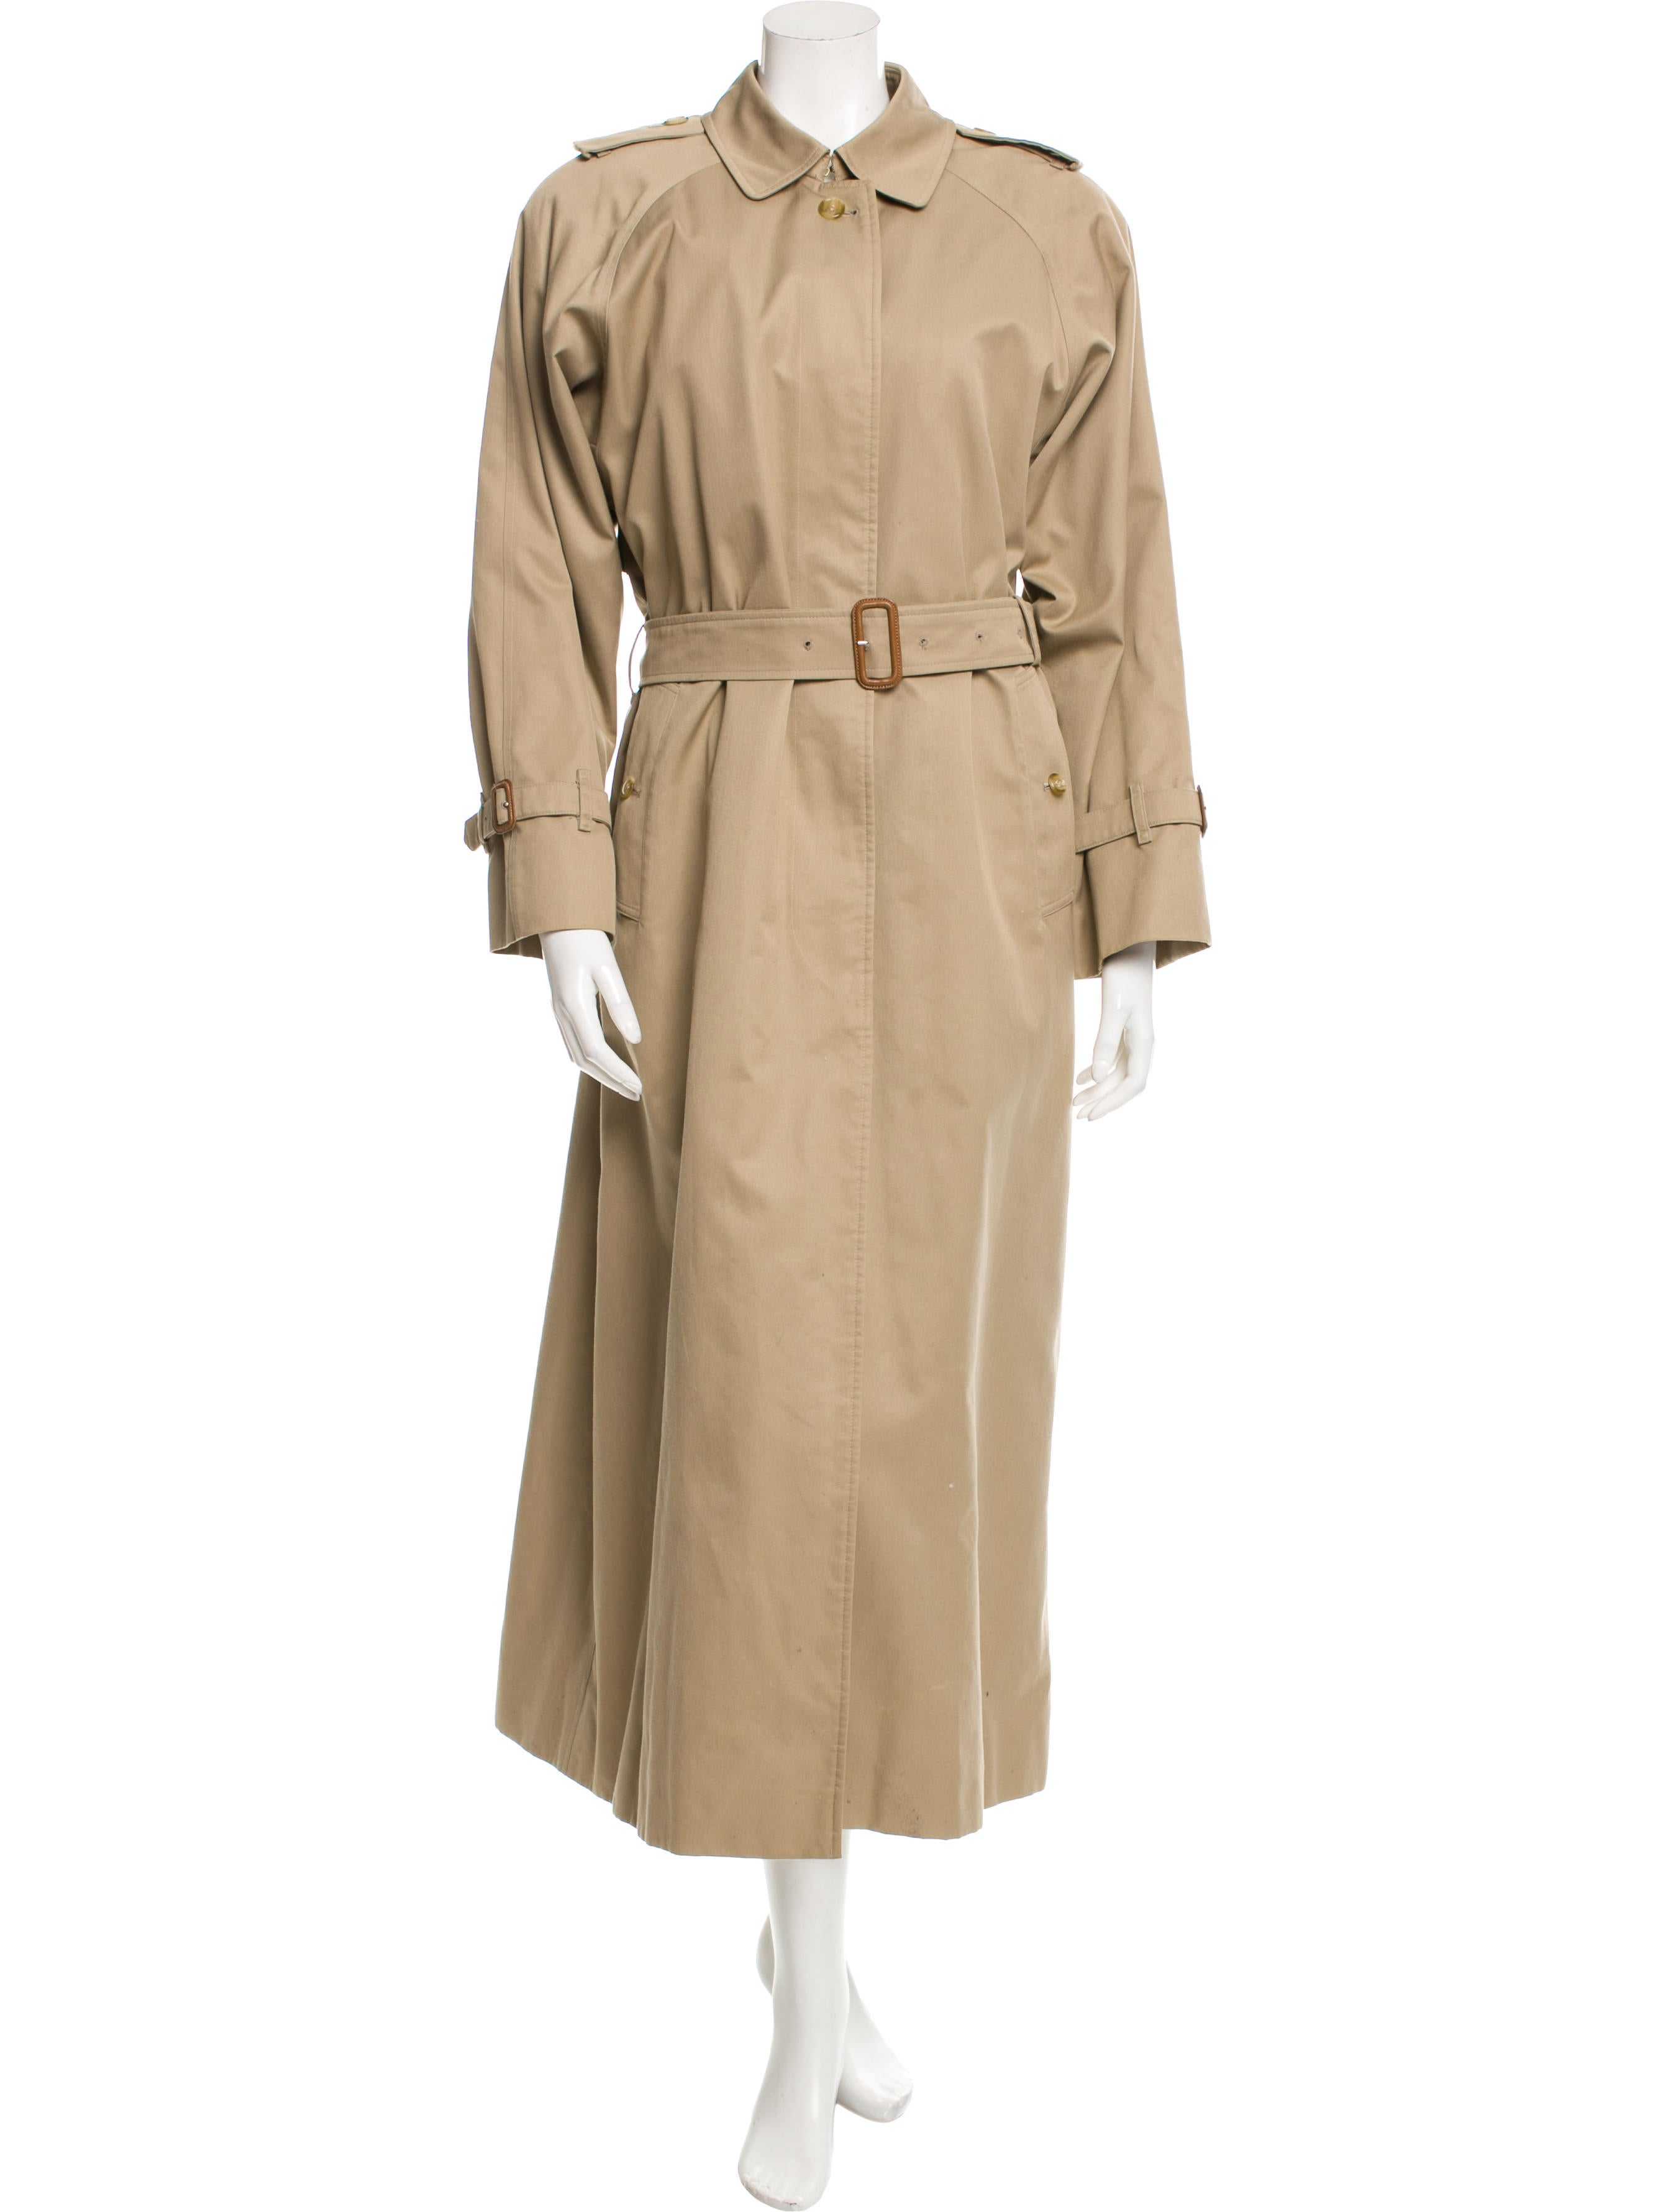 Elegant Women's Trench Coats and Raincoats Macs and trench coats are timeless pieces that are always on trend. Have a look at our selection of shower proof trench coats to keep you dry in those British showers, or opt for a bold, brightly-coloured piece and stand out from the crowd.